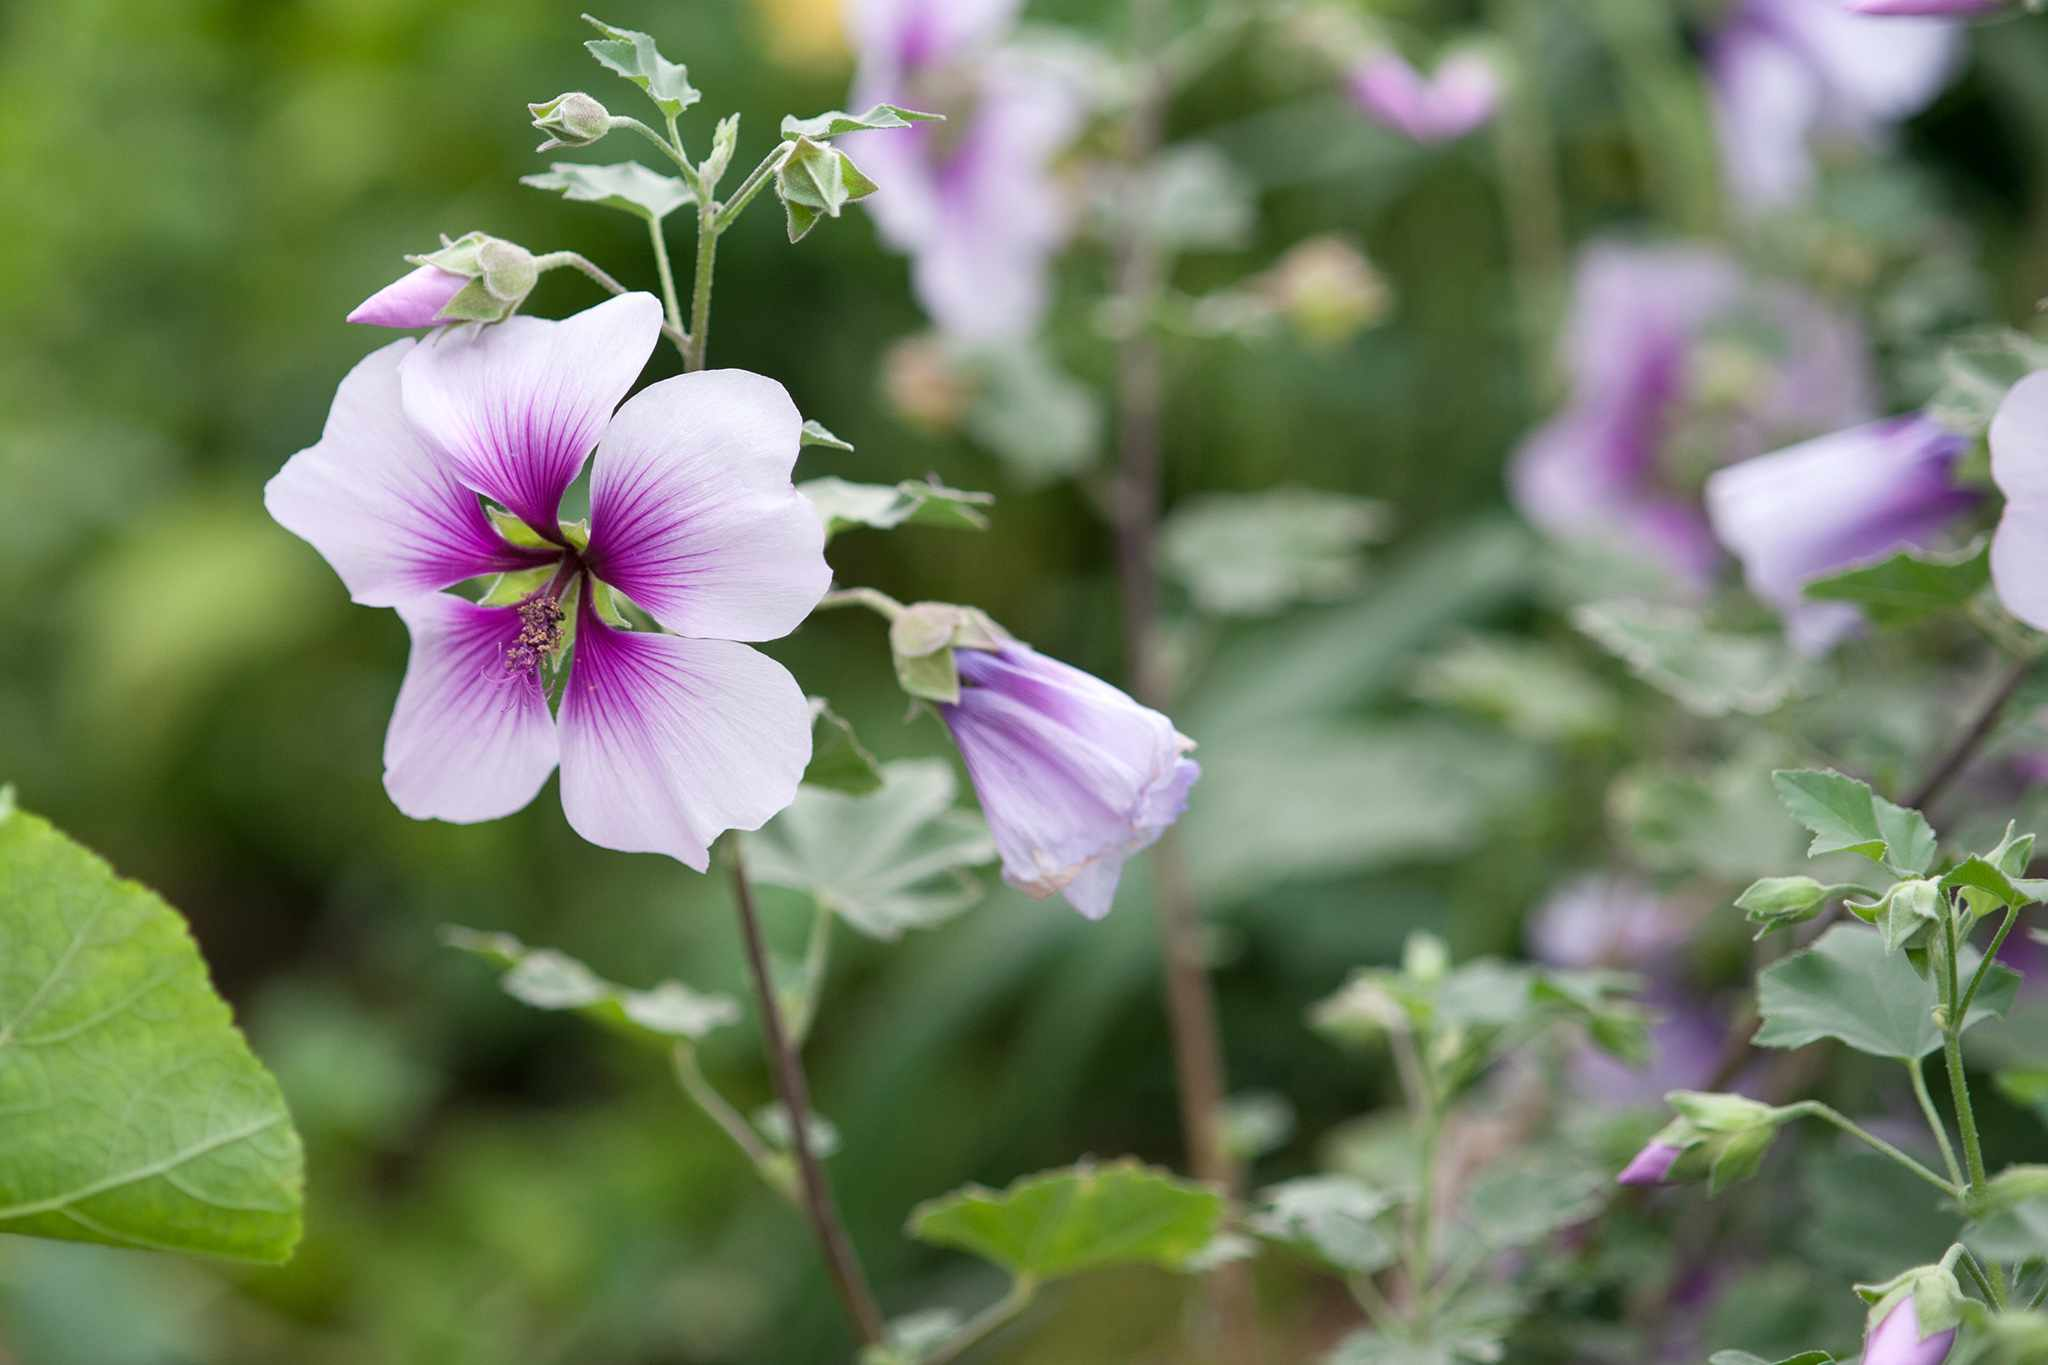 Mauve flowers of lavatera